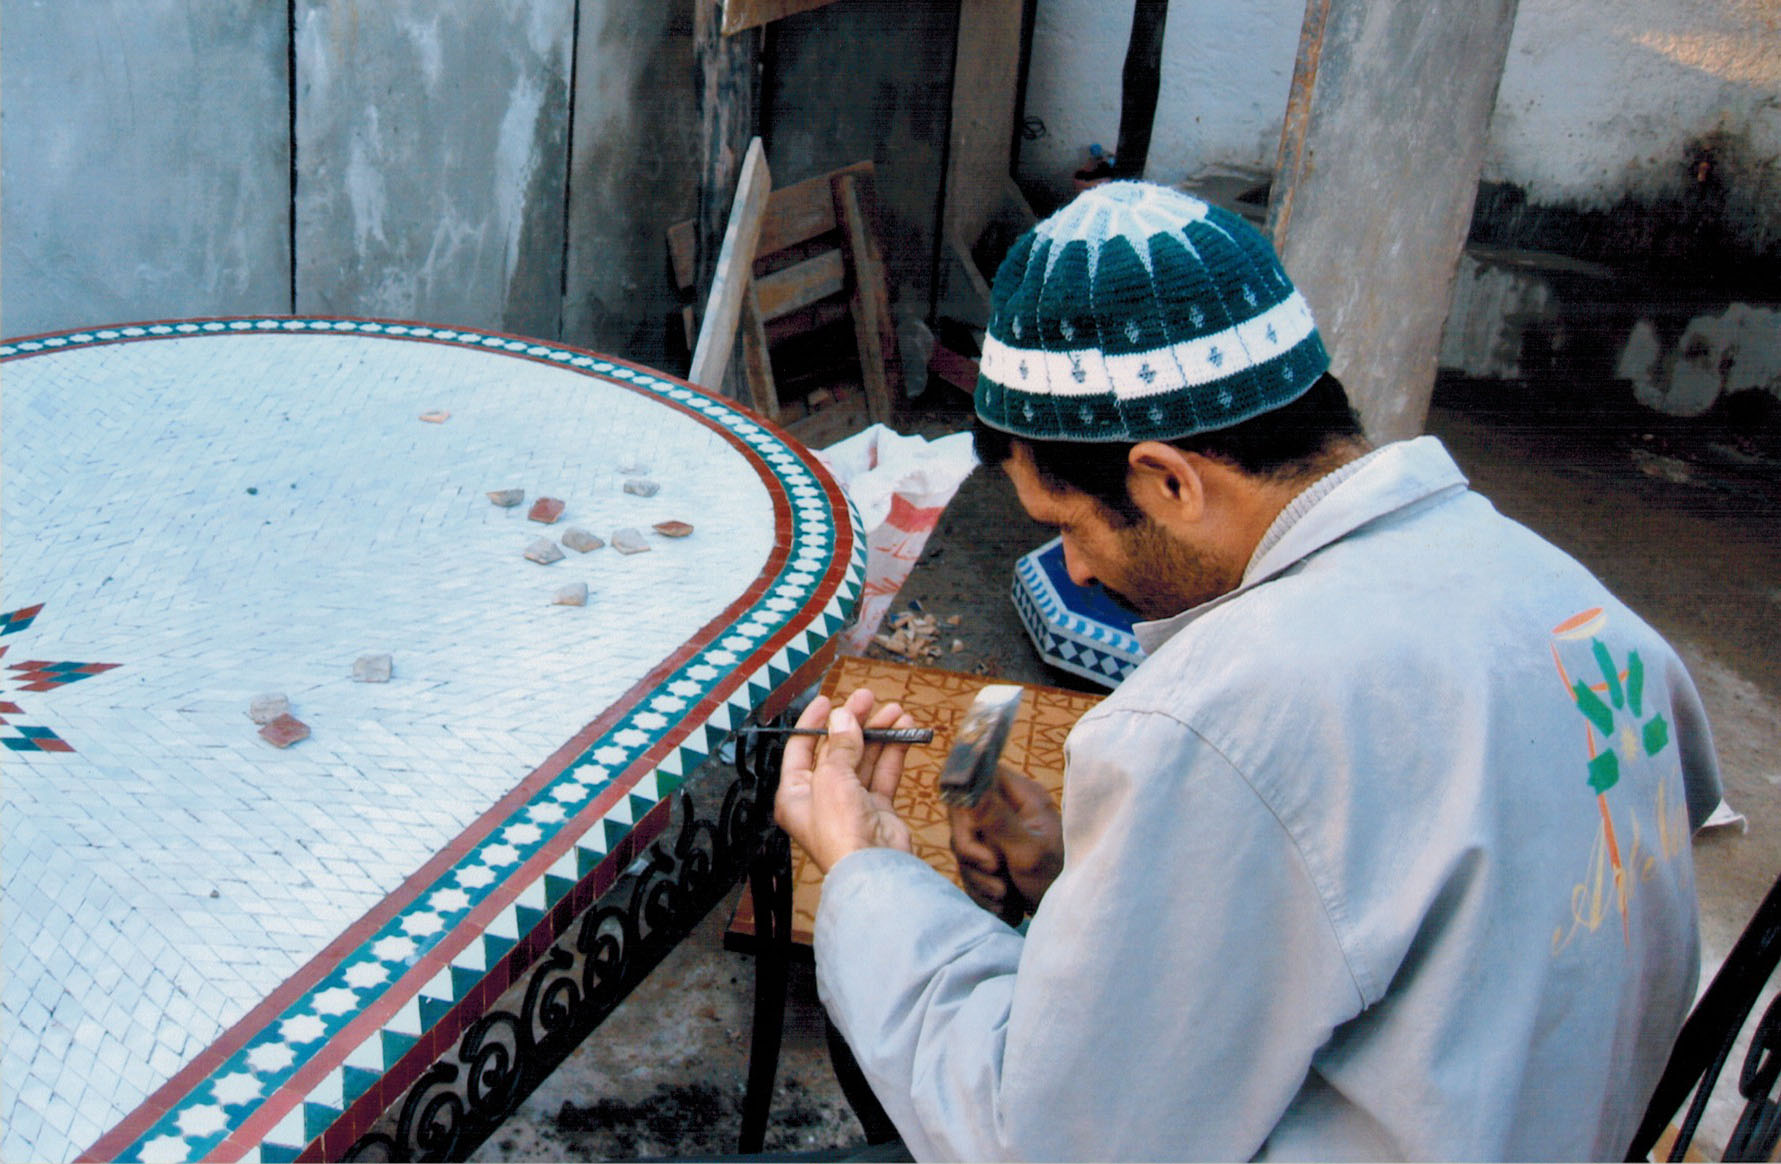 Artisan working in the ceramics factory outside the New Town of Fez, Morocco